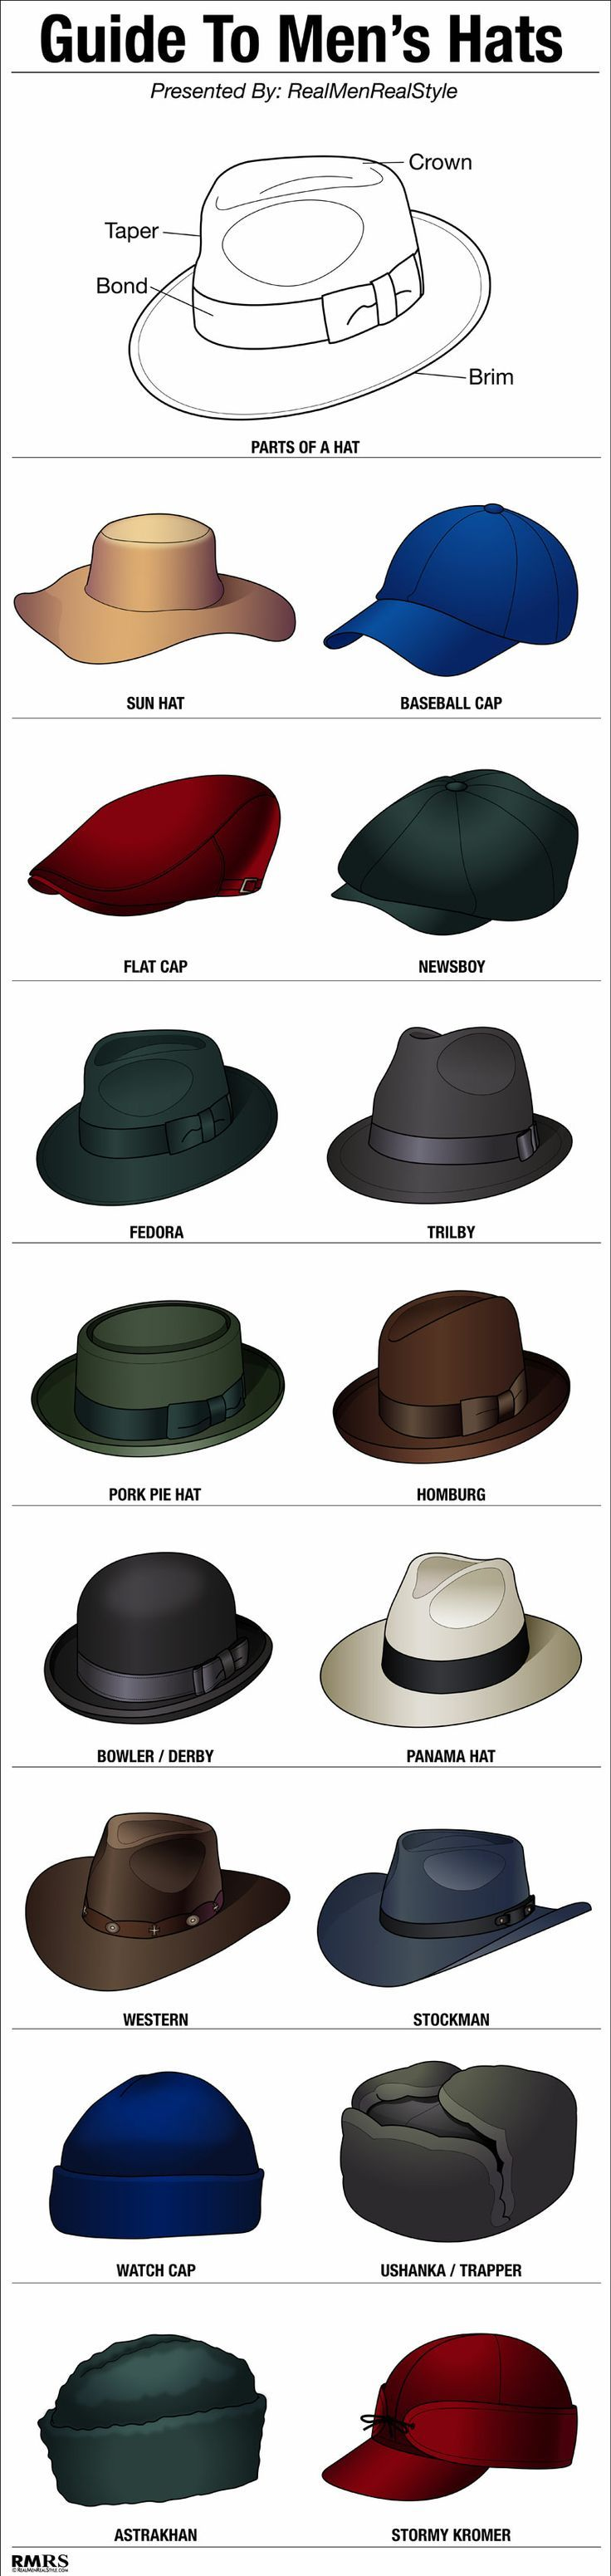 (3) 16 Stylish Men's Hats | Style Guides & Tips | Pinterest